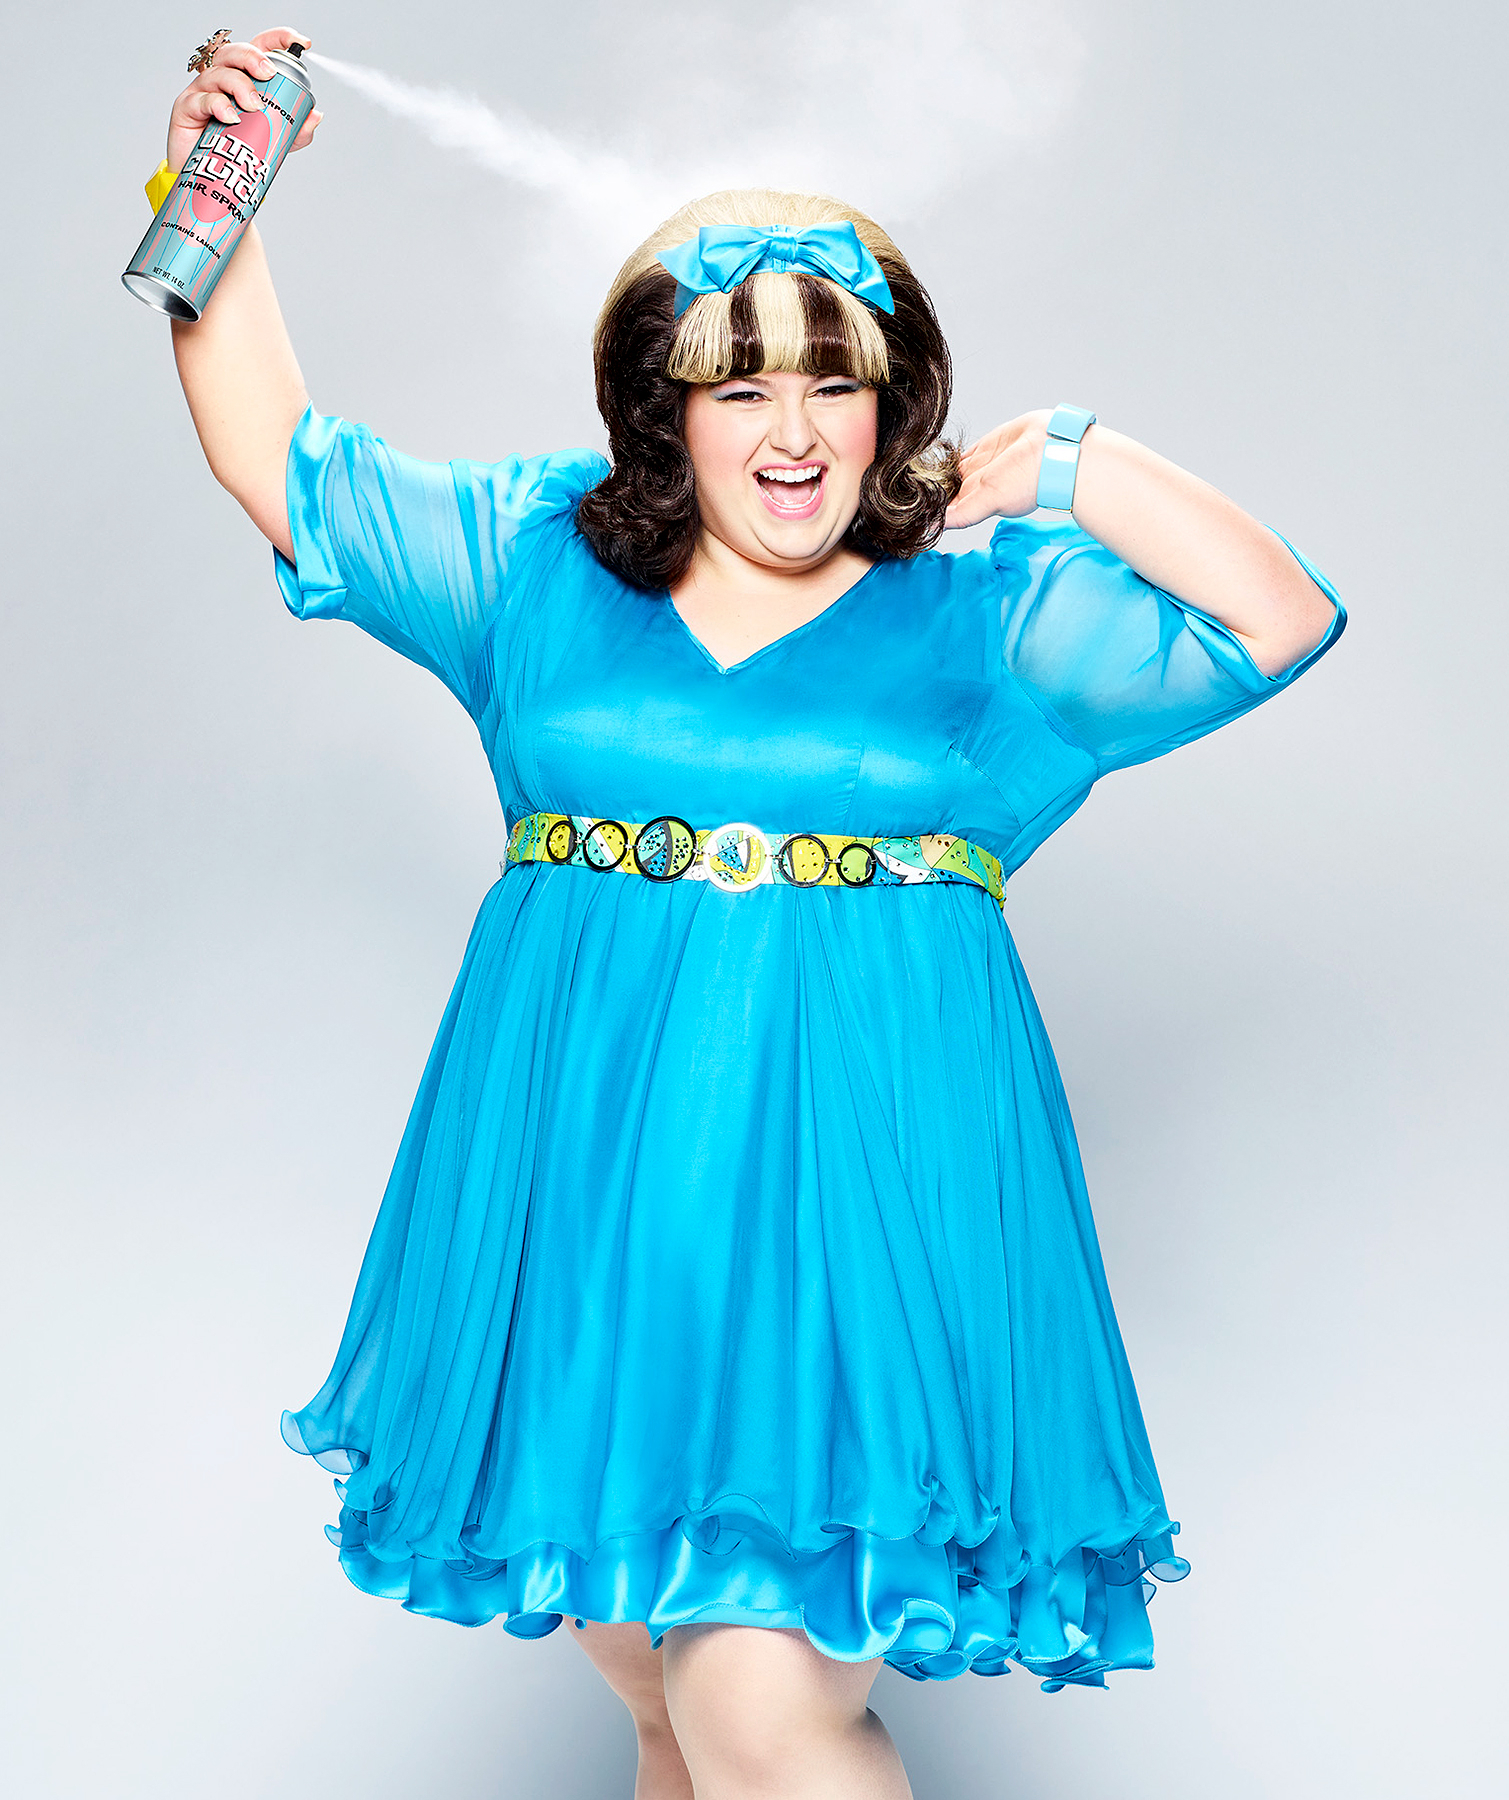 Maddie Baillio as Tracy Turnblad